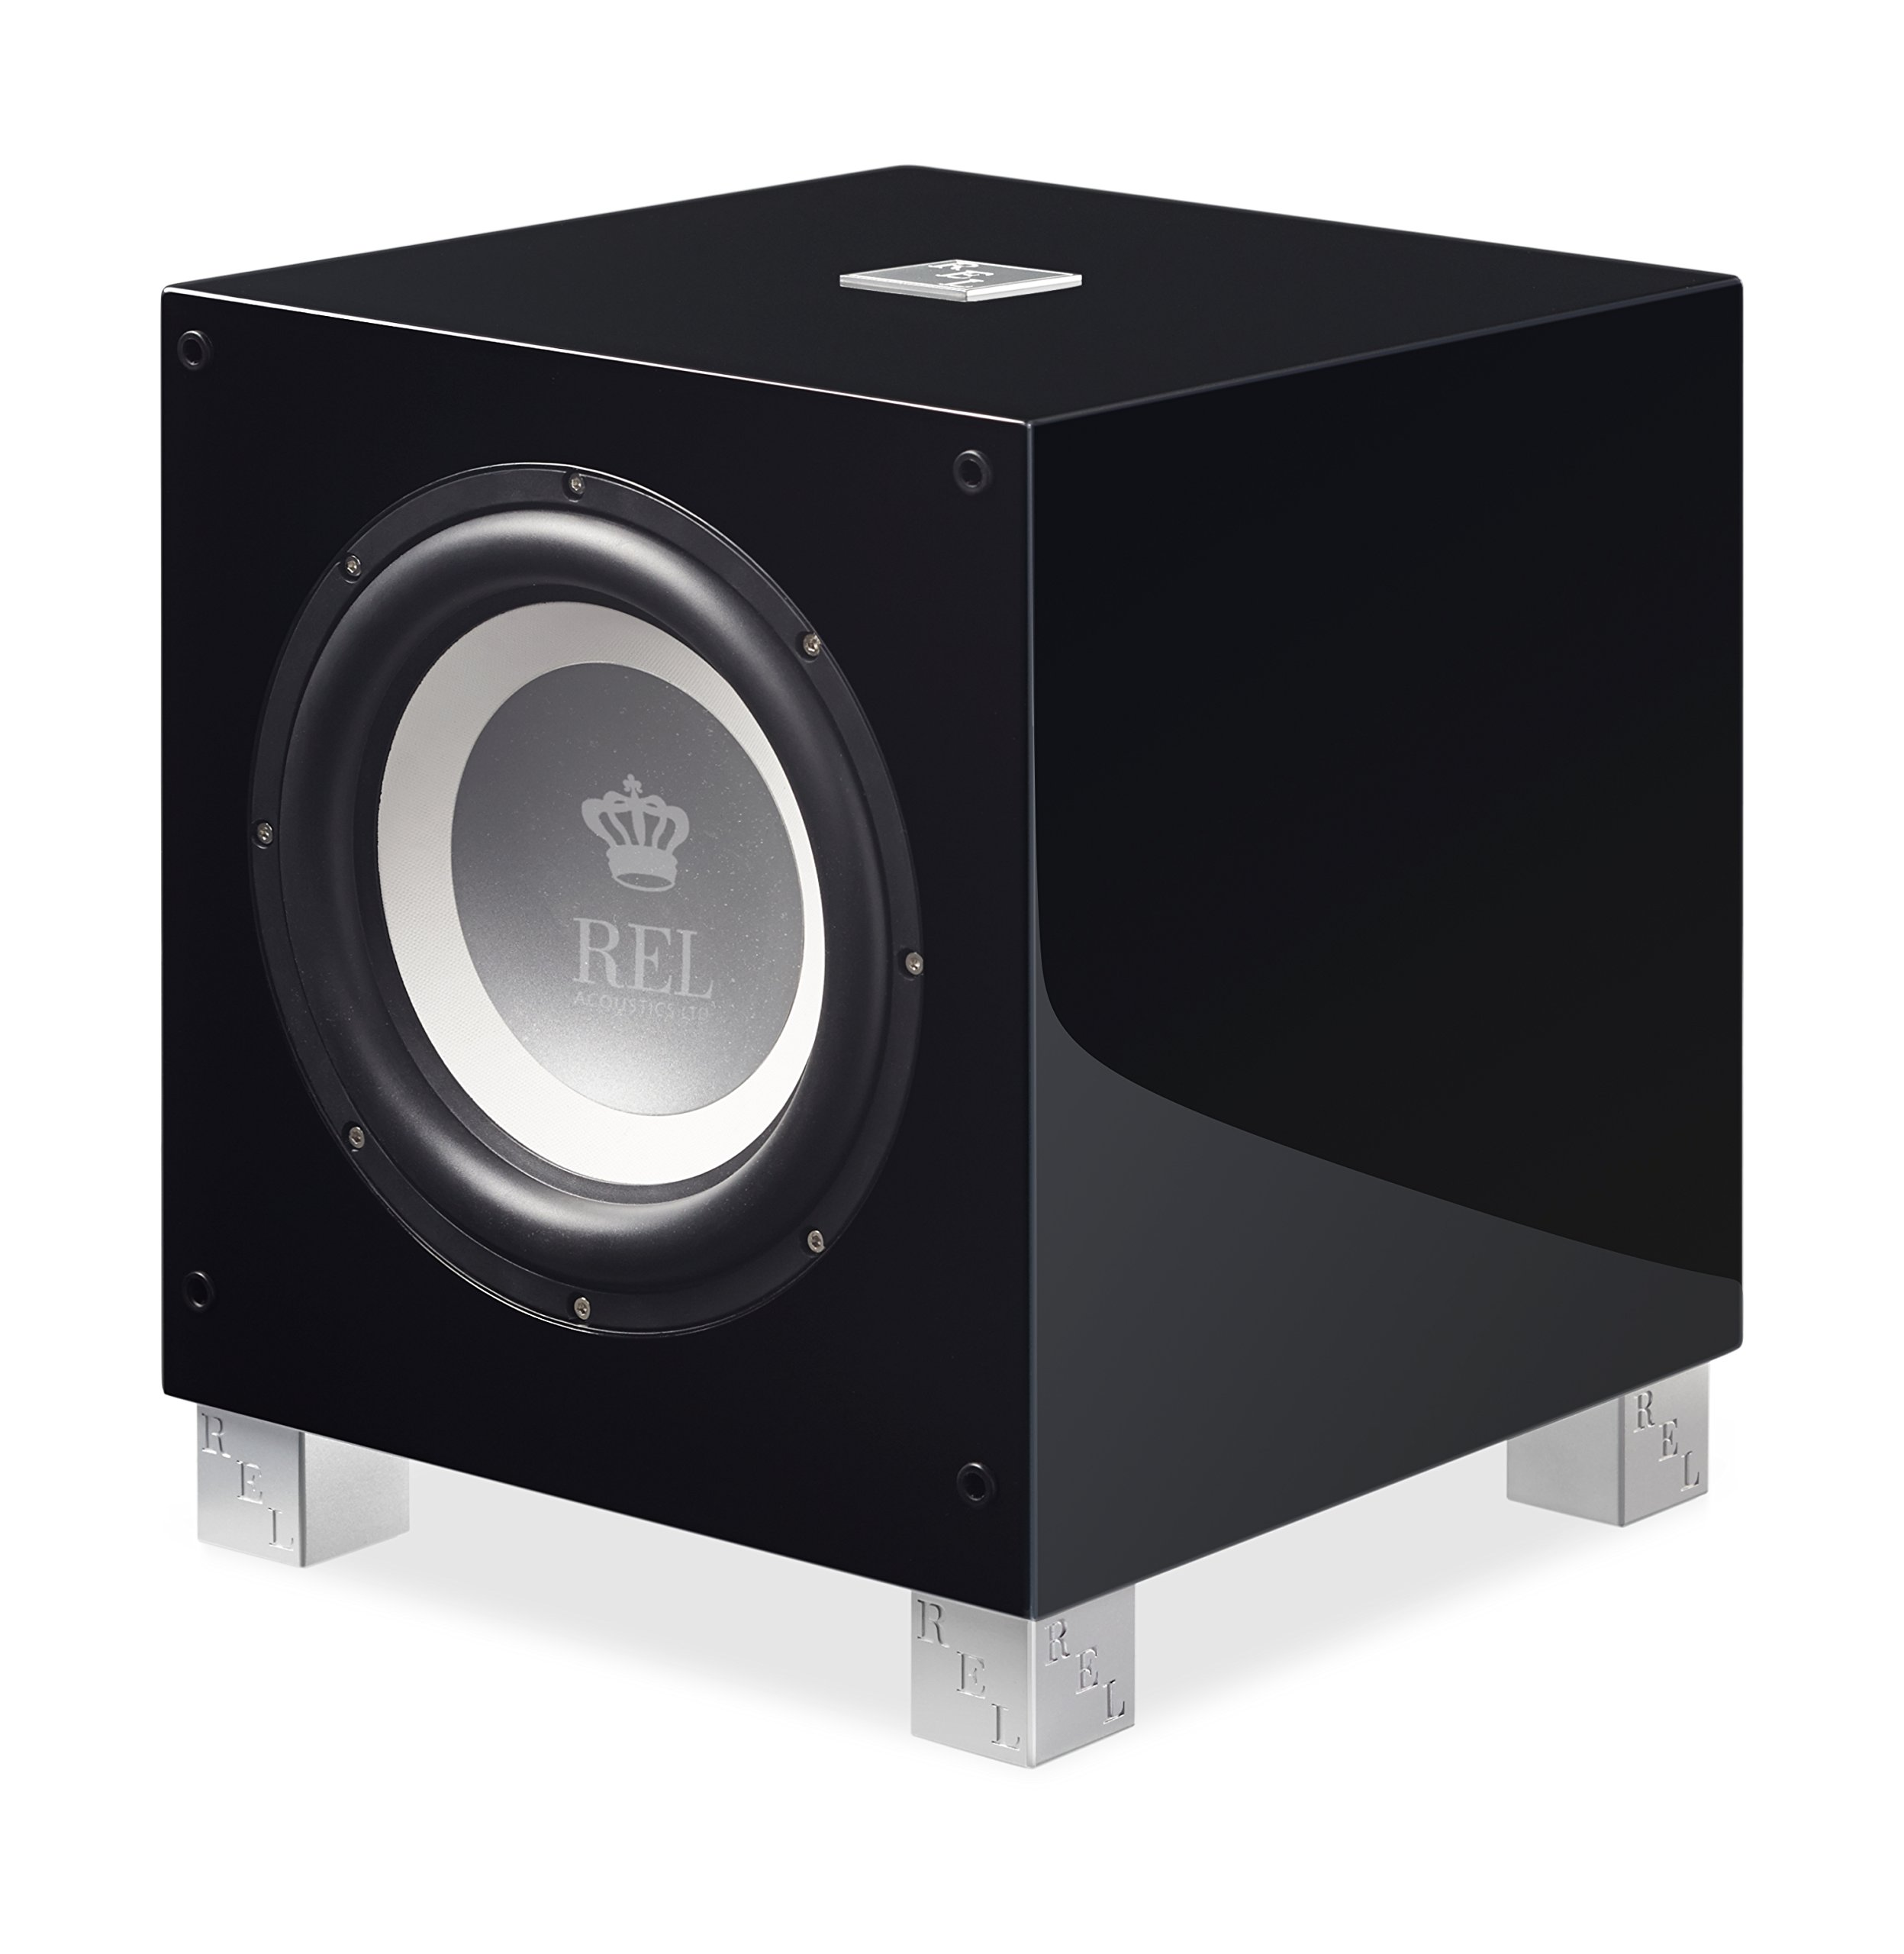 REL Acoustics T/9i Subwoofer, 10 inch Front-Firing Driver, Arrow wireless port, High Gloss Black